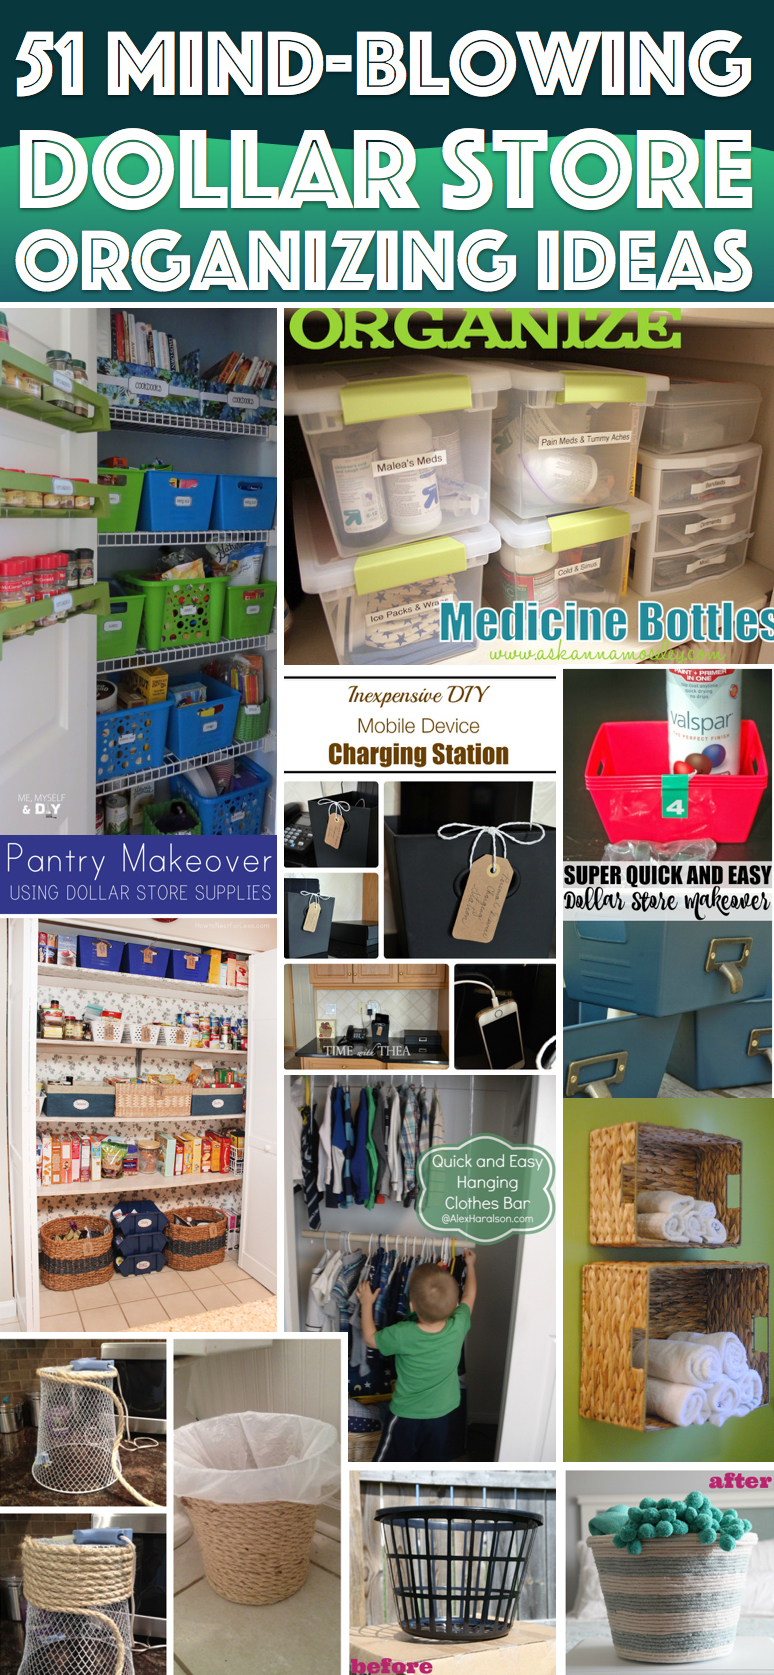 51 mind-blowing dollar store organizing ideas to get your home a